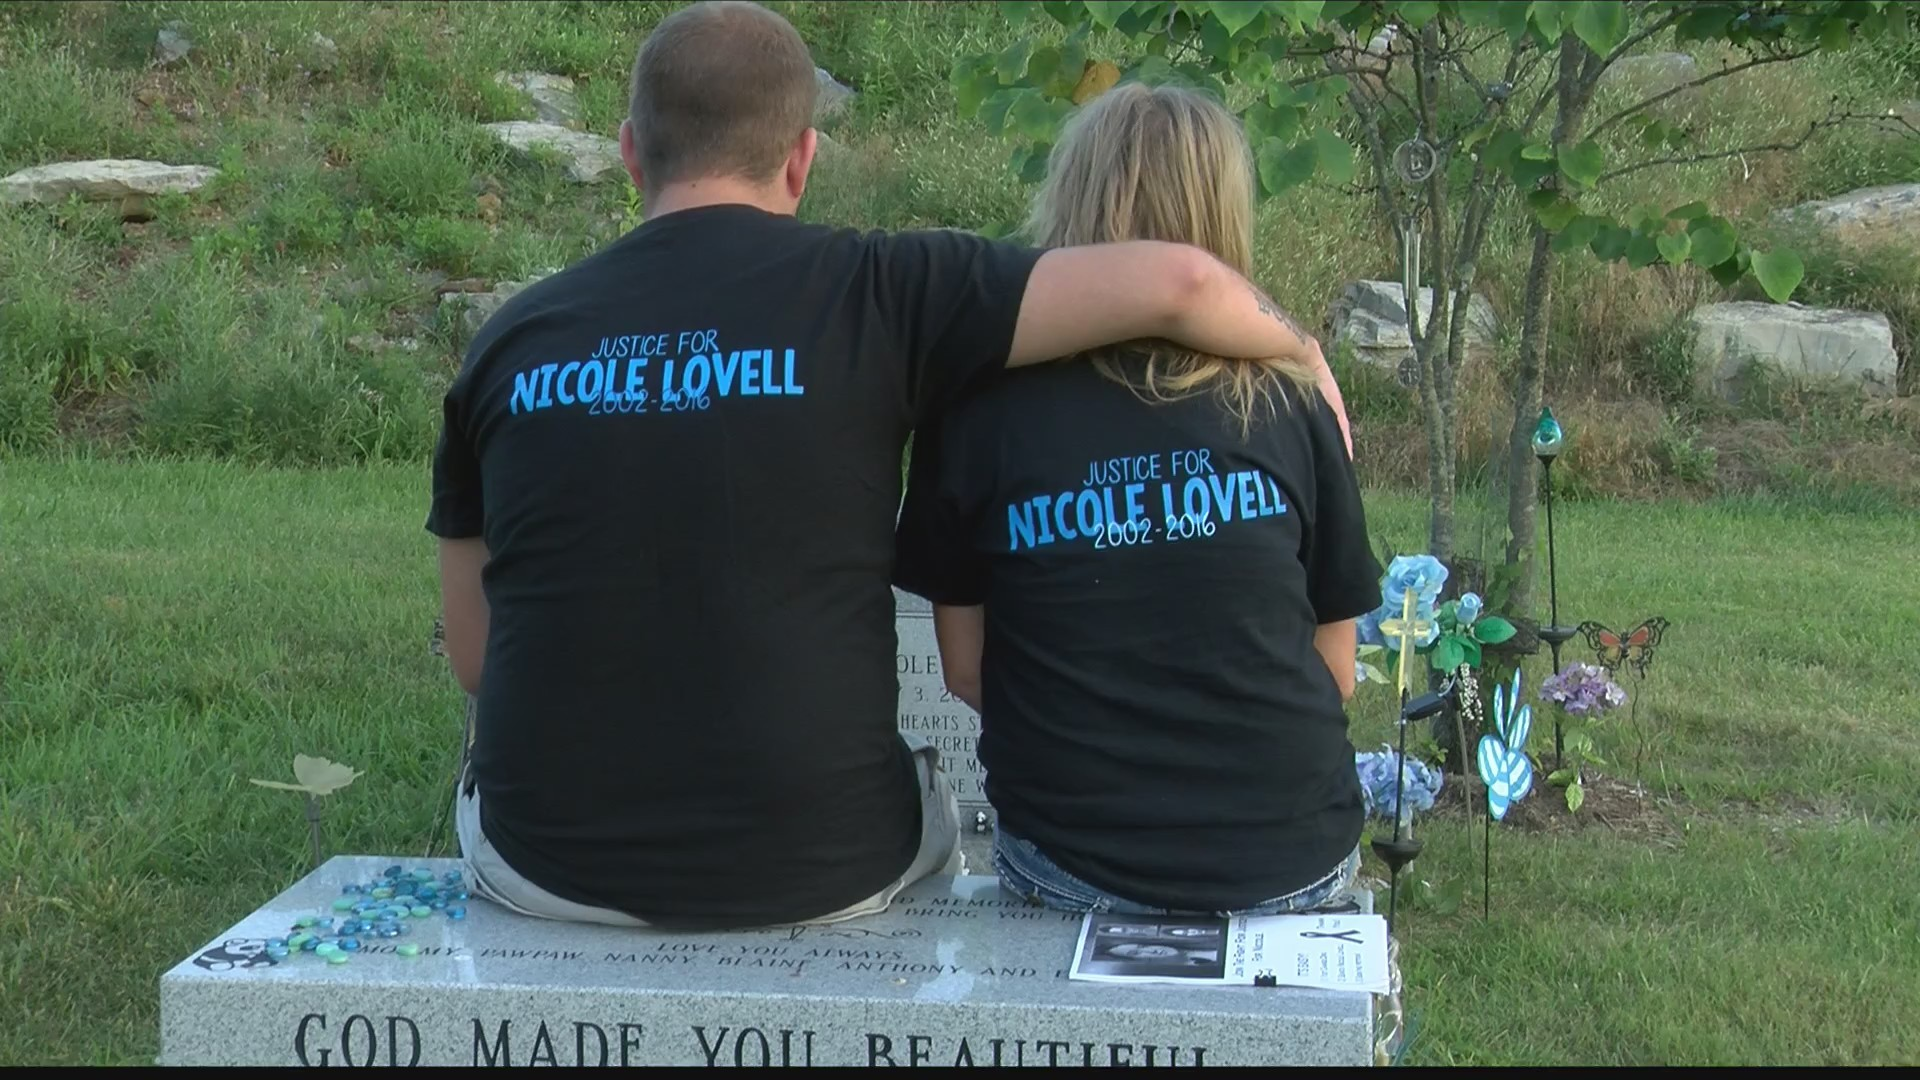 Nicole_Lovell_s_family_seeking_justice_0_20180718043242